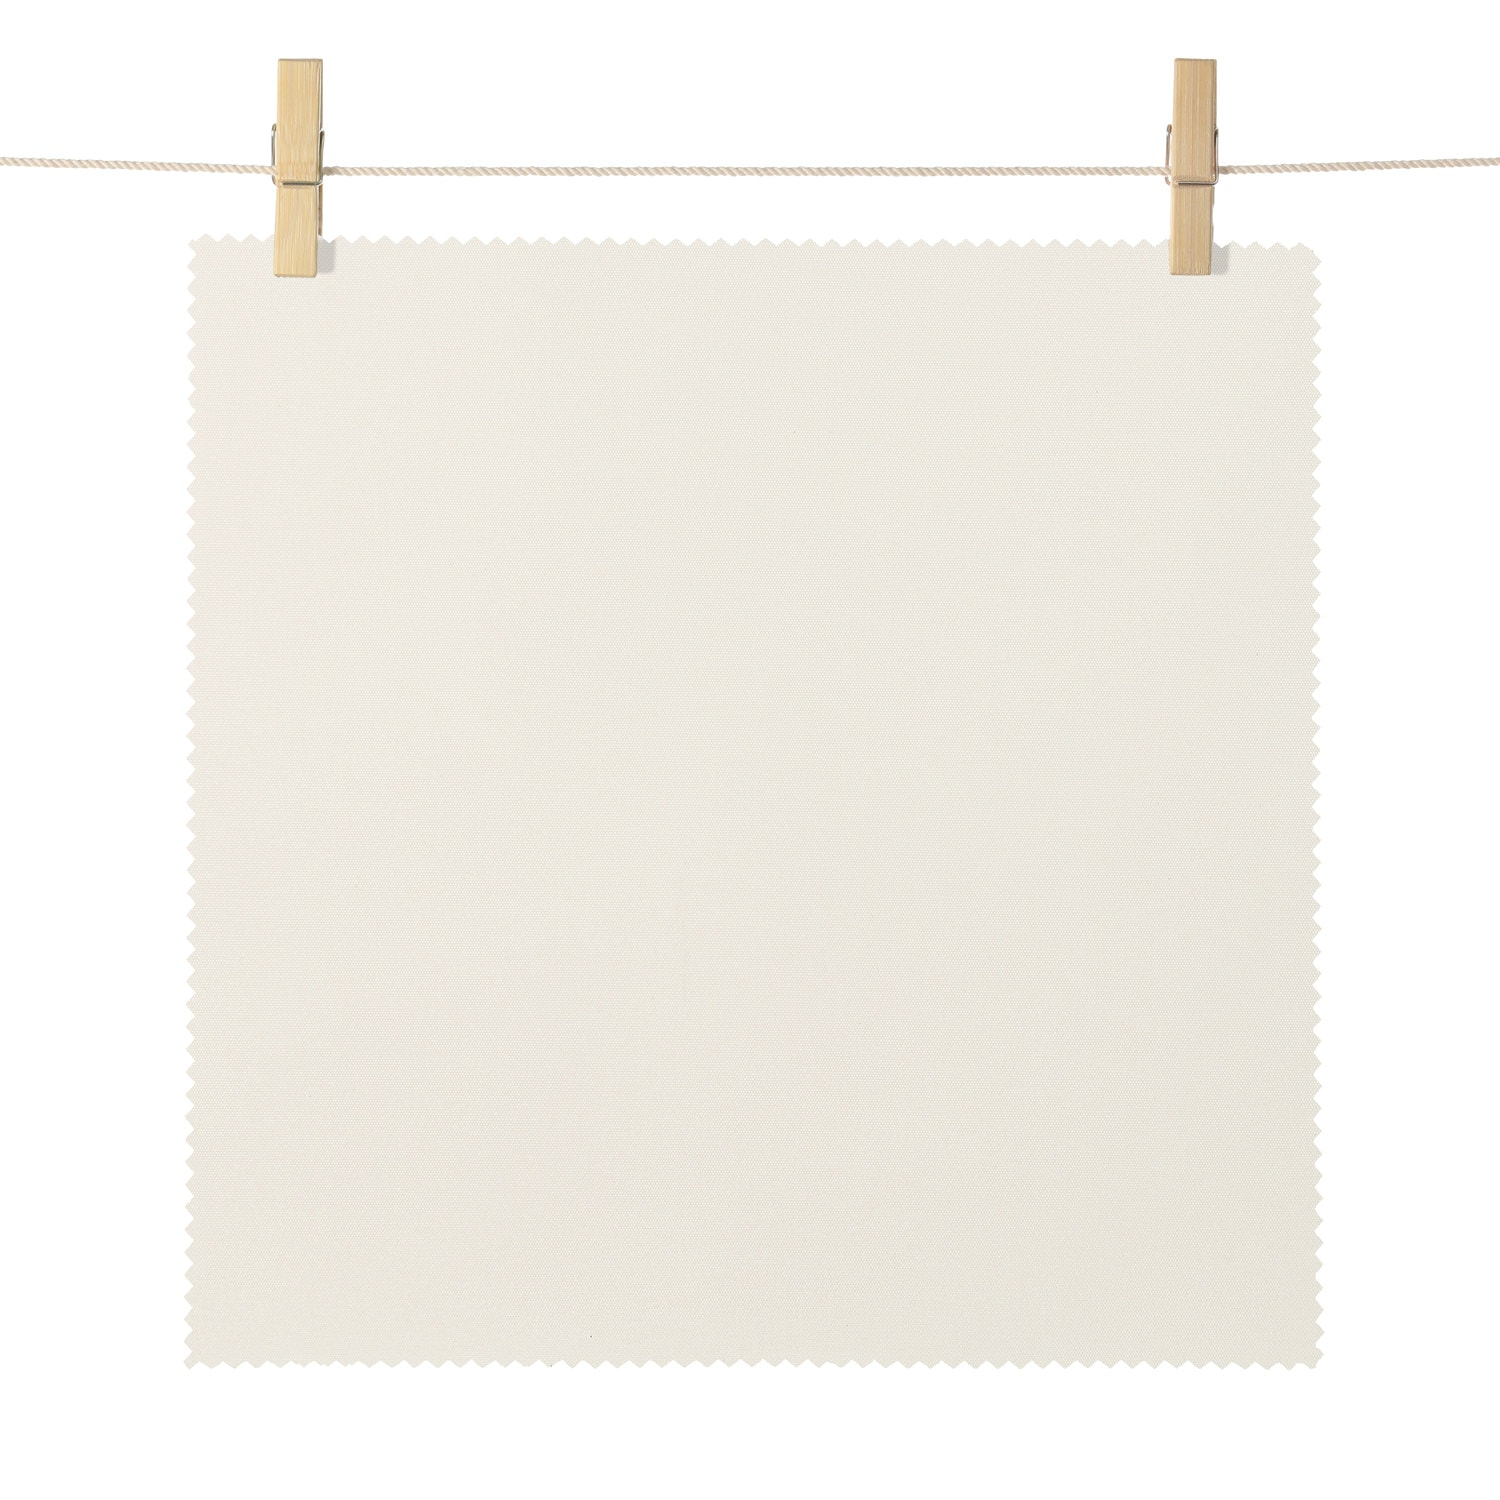 Mendocino Ivory Broadcloth Textured Blackout Roller Shade Swatch